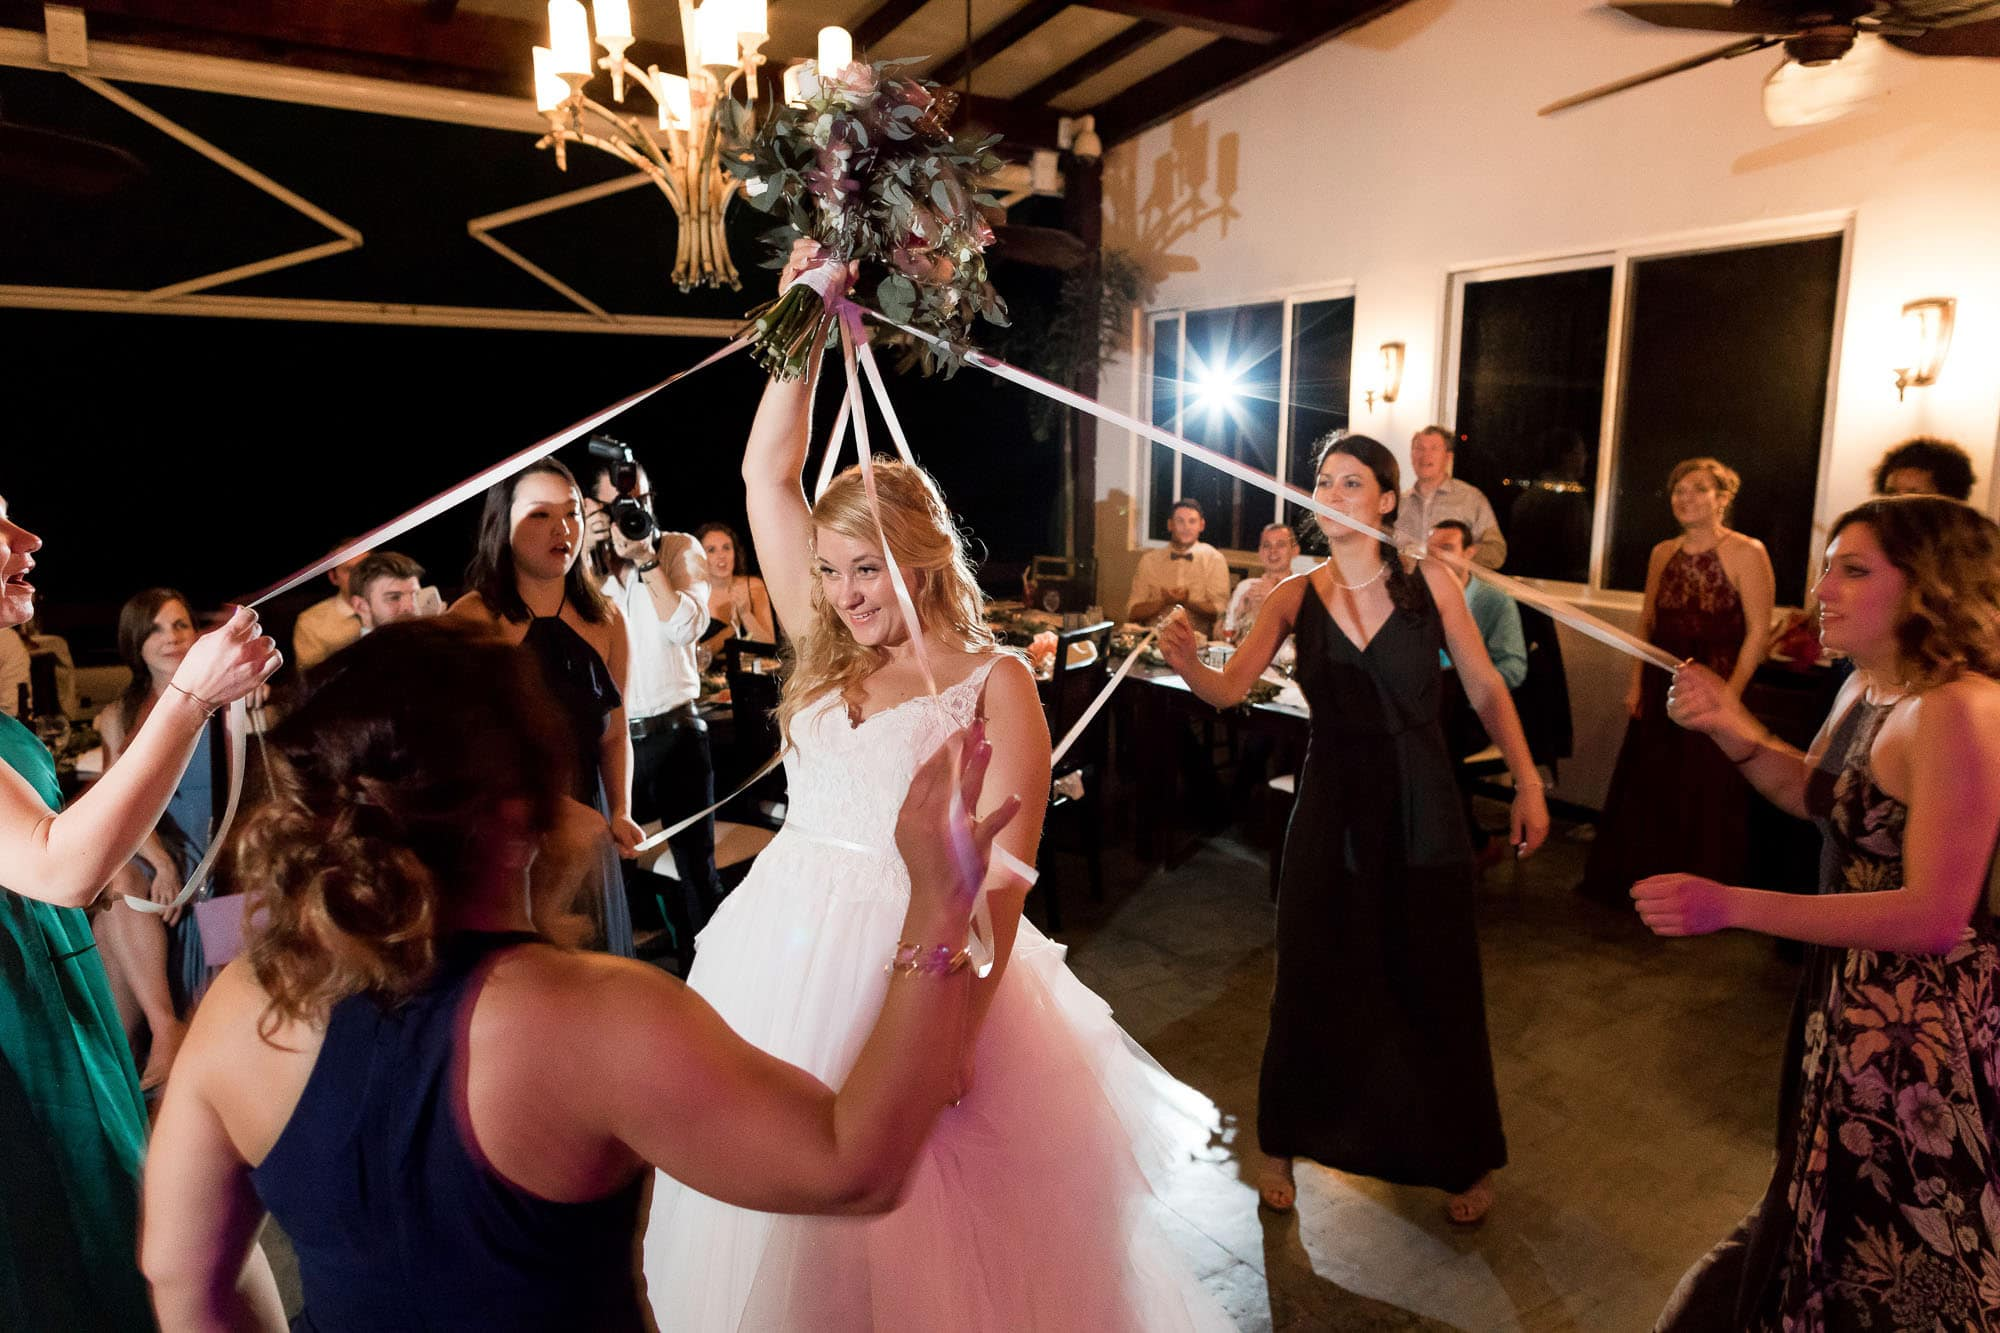 The bride holds aloft her bouquet and the single ladies each grab a streamer connected to it.